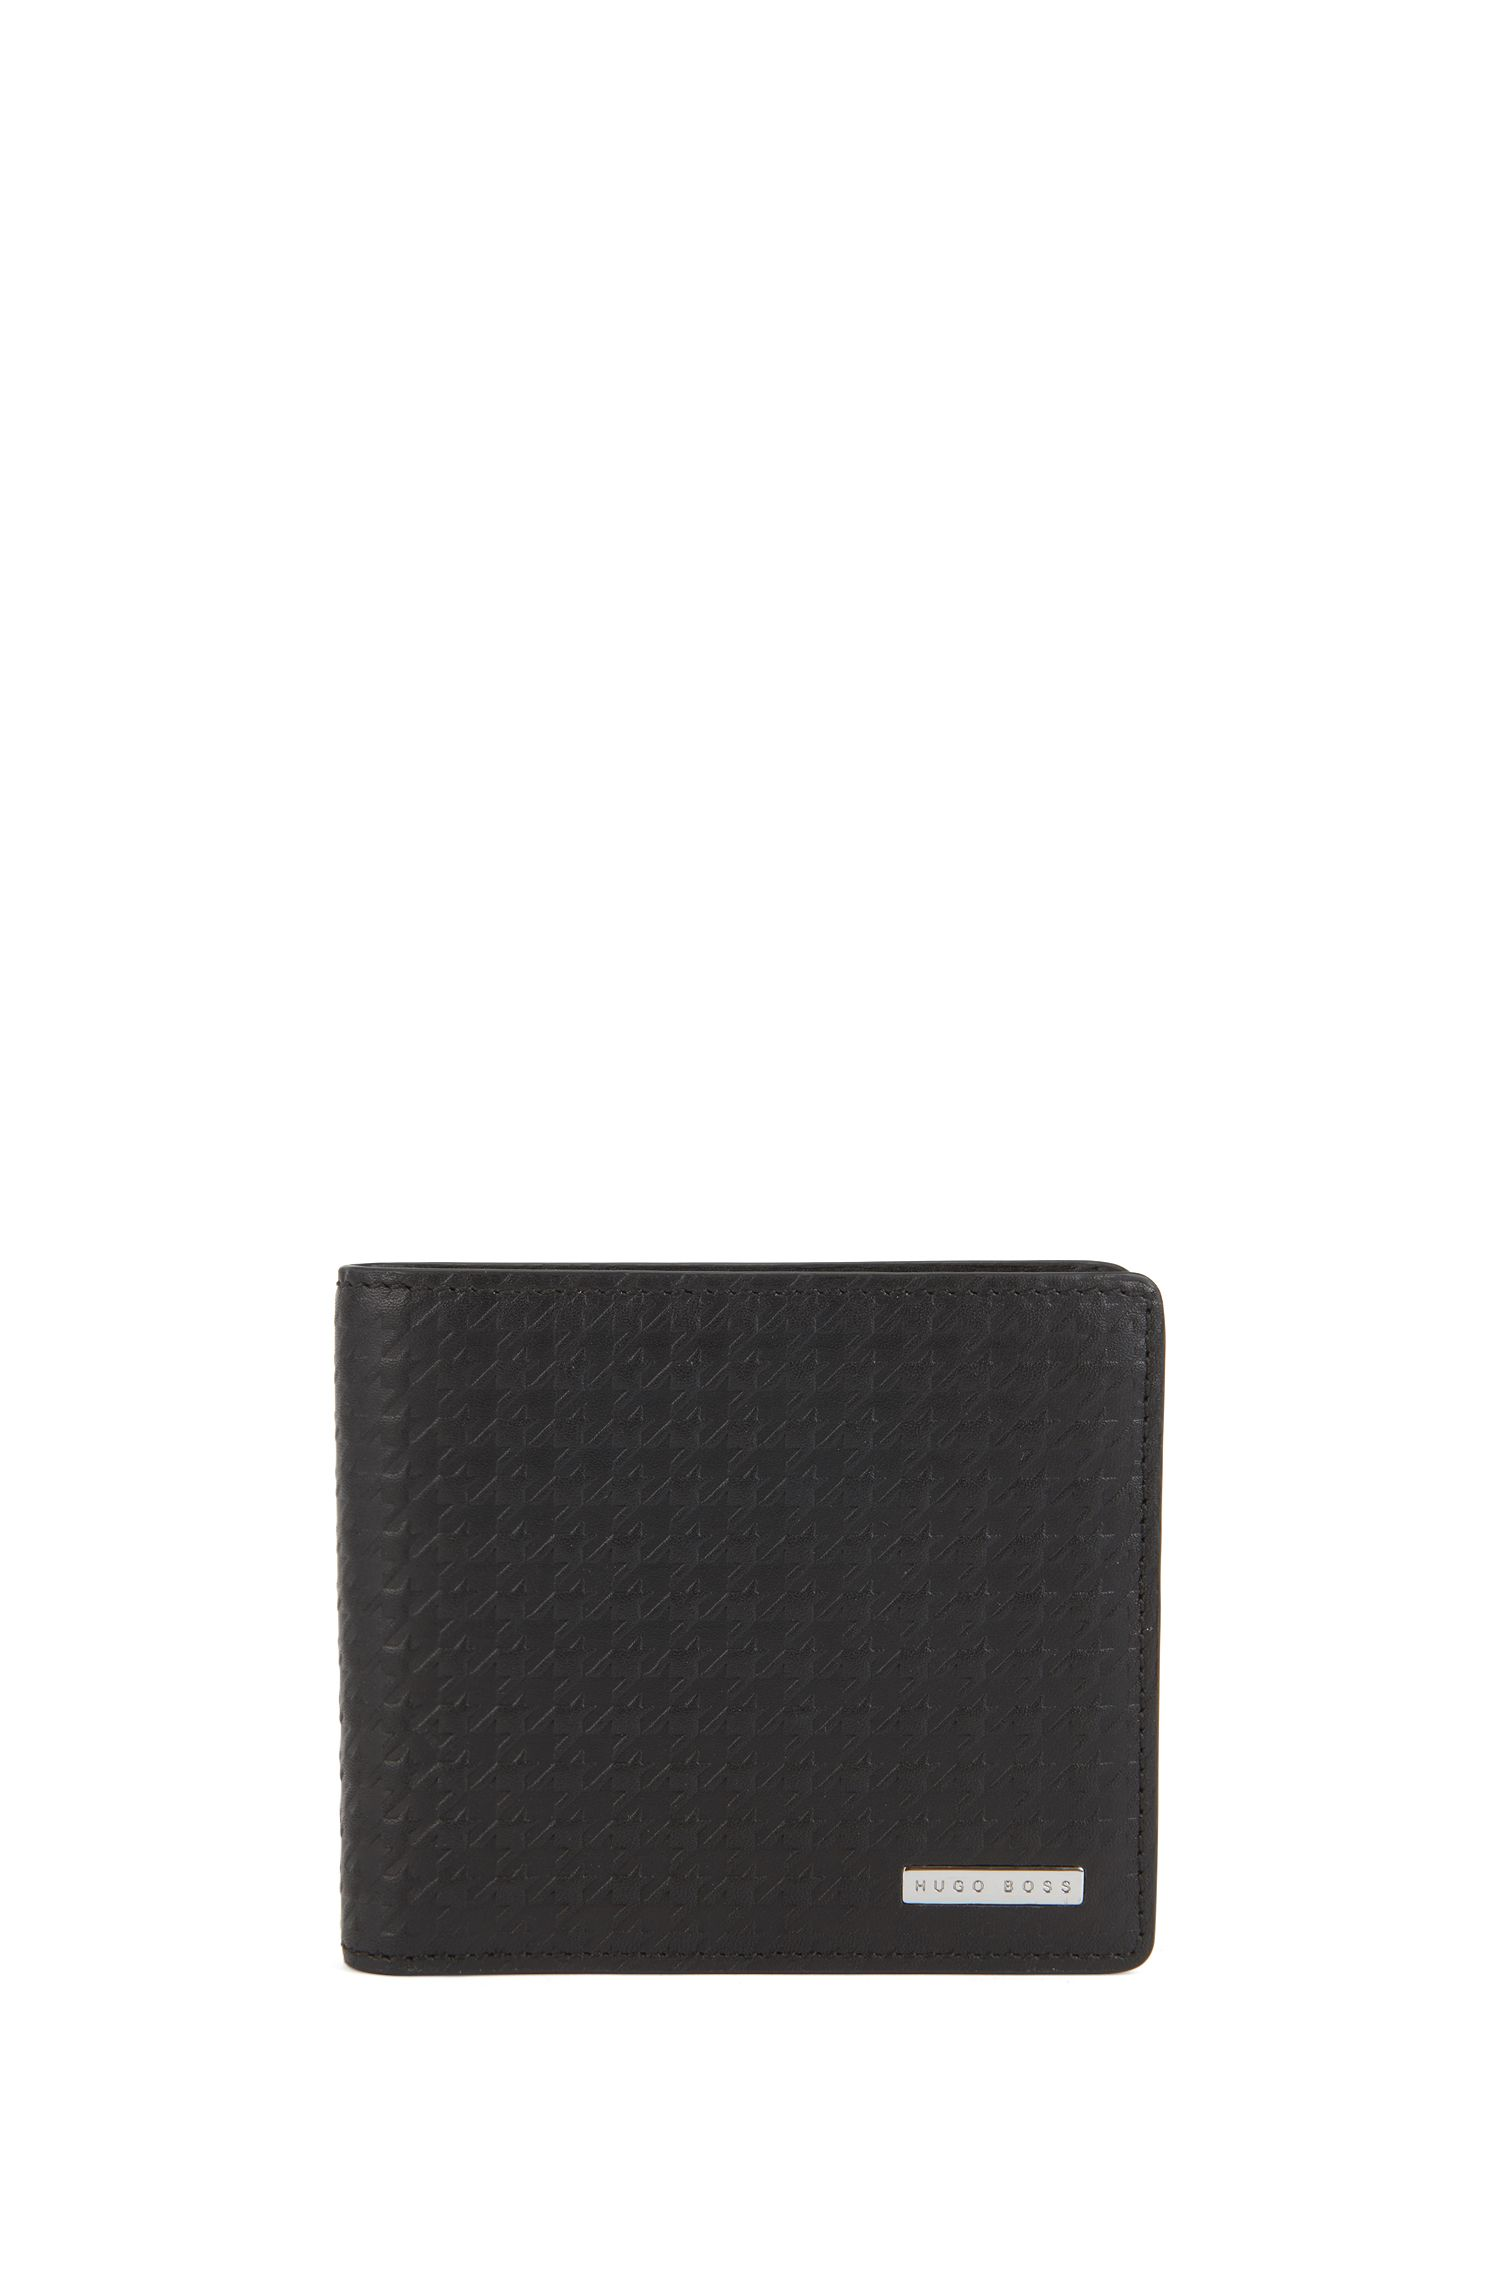 Wallet and card case gift set in houndstooth-embossed leather, Black